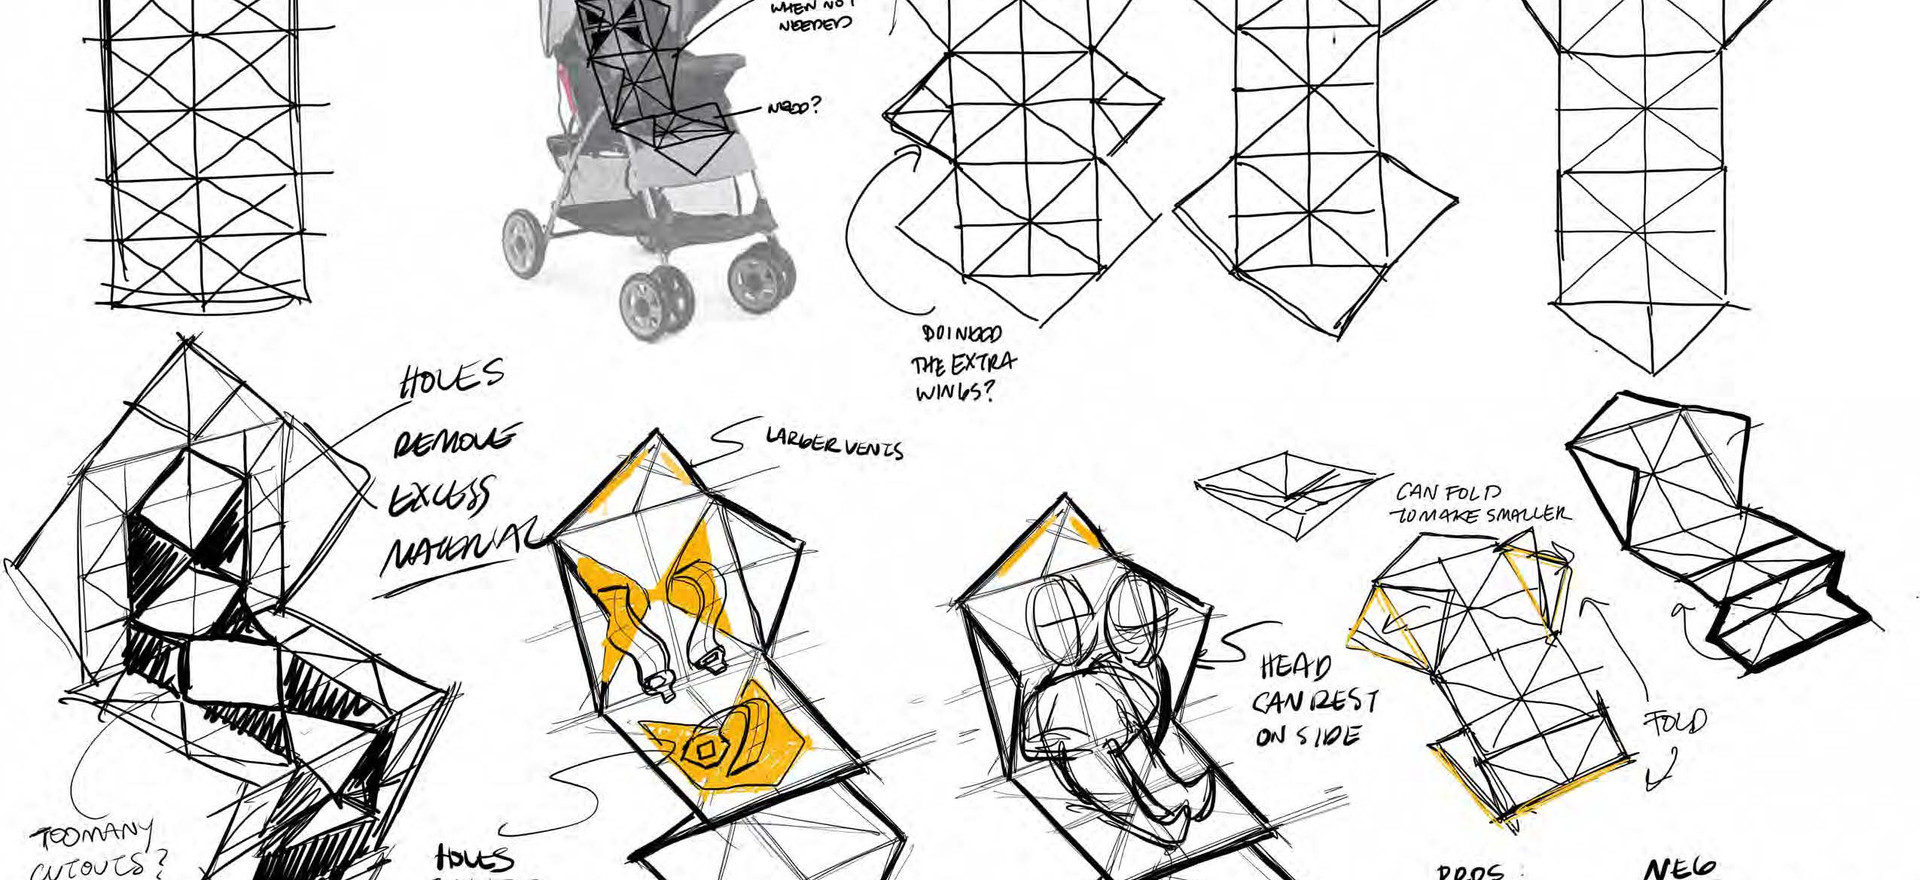 Phase 6 Sketch Packet_Page_3.jpg